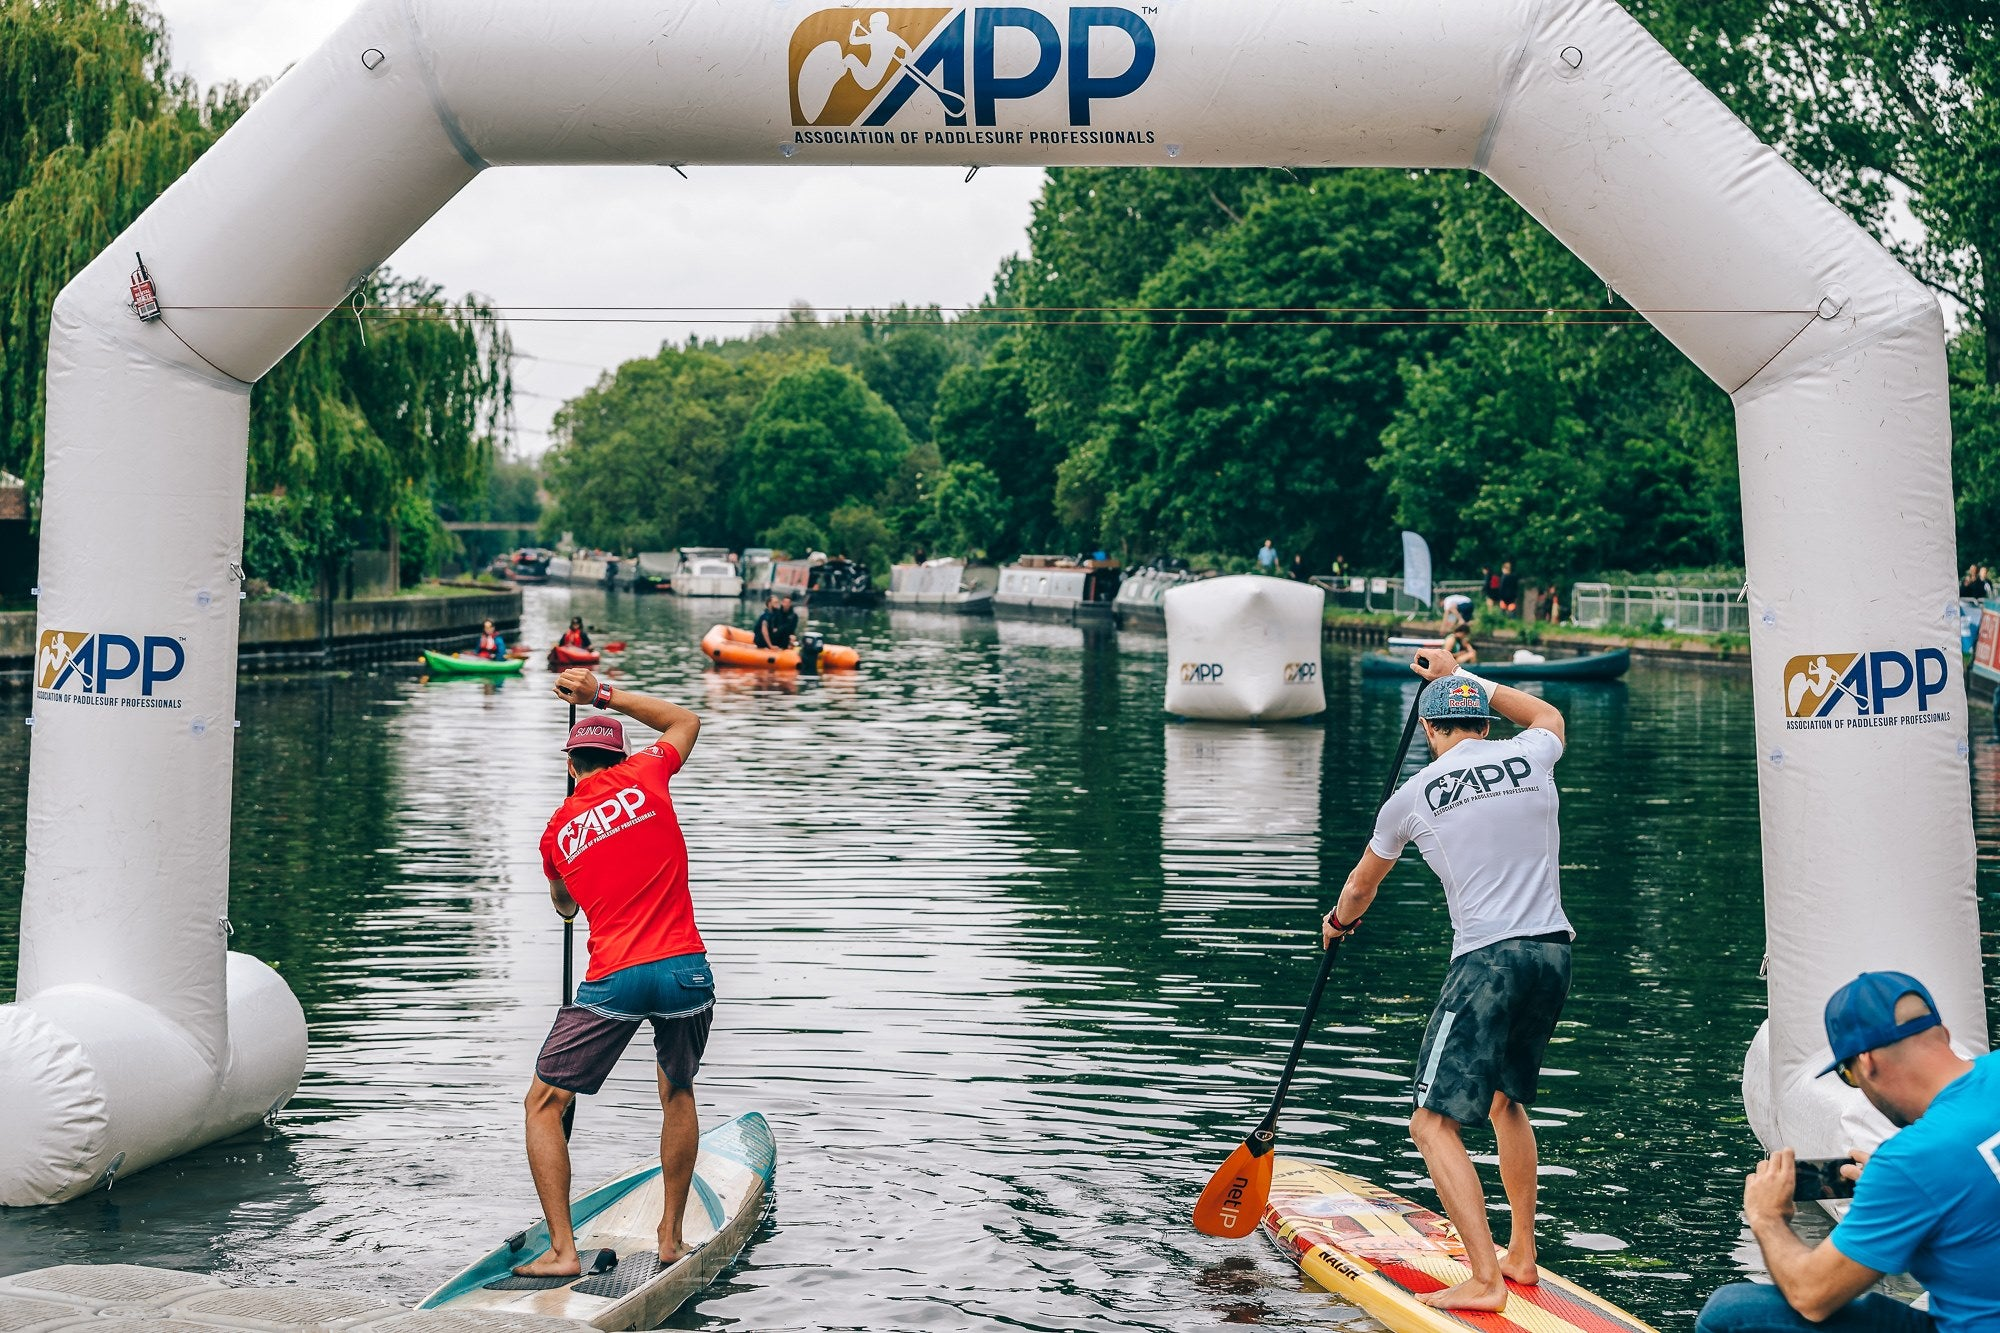 APP World Tour London 2019 - Sprint Finish Line